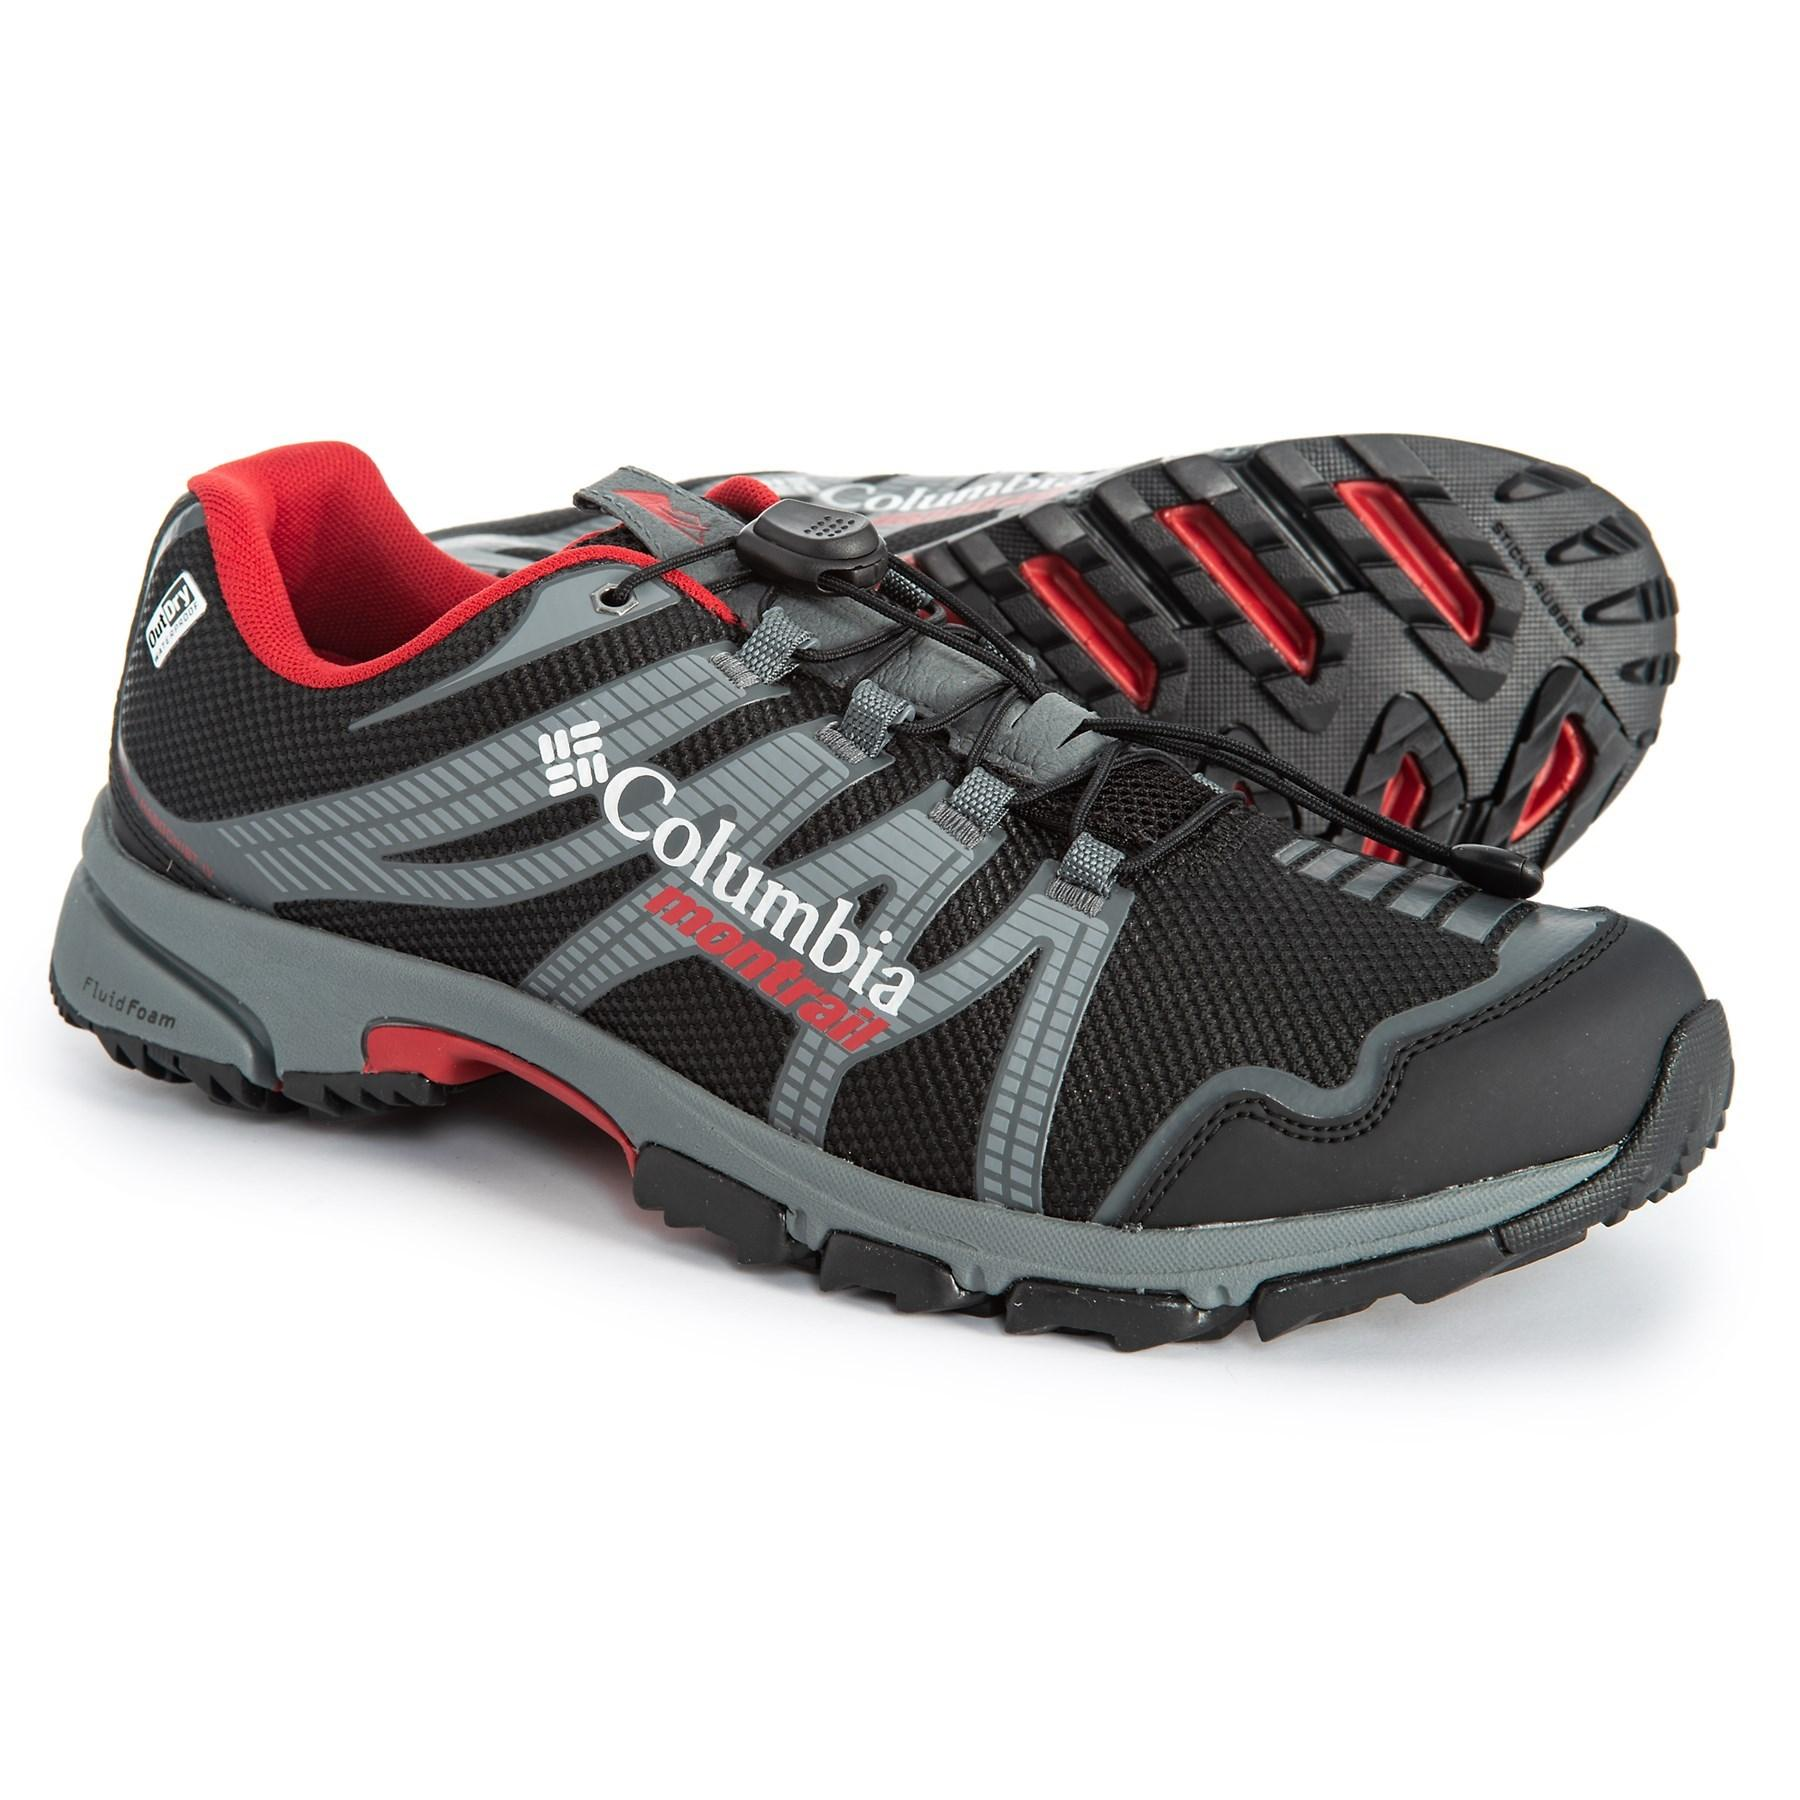 Iv Trail Montrail Shoes Mountain In Outdry® Running Masochist Lyst NPvm8n0yOw